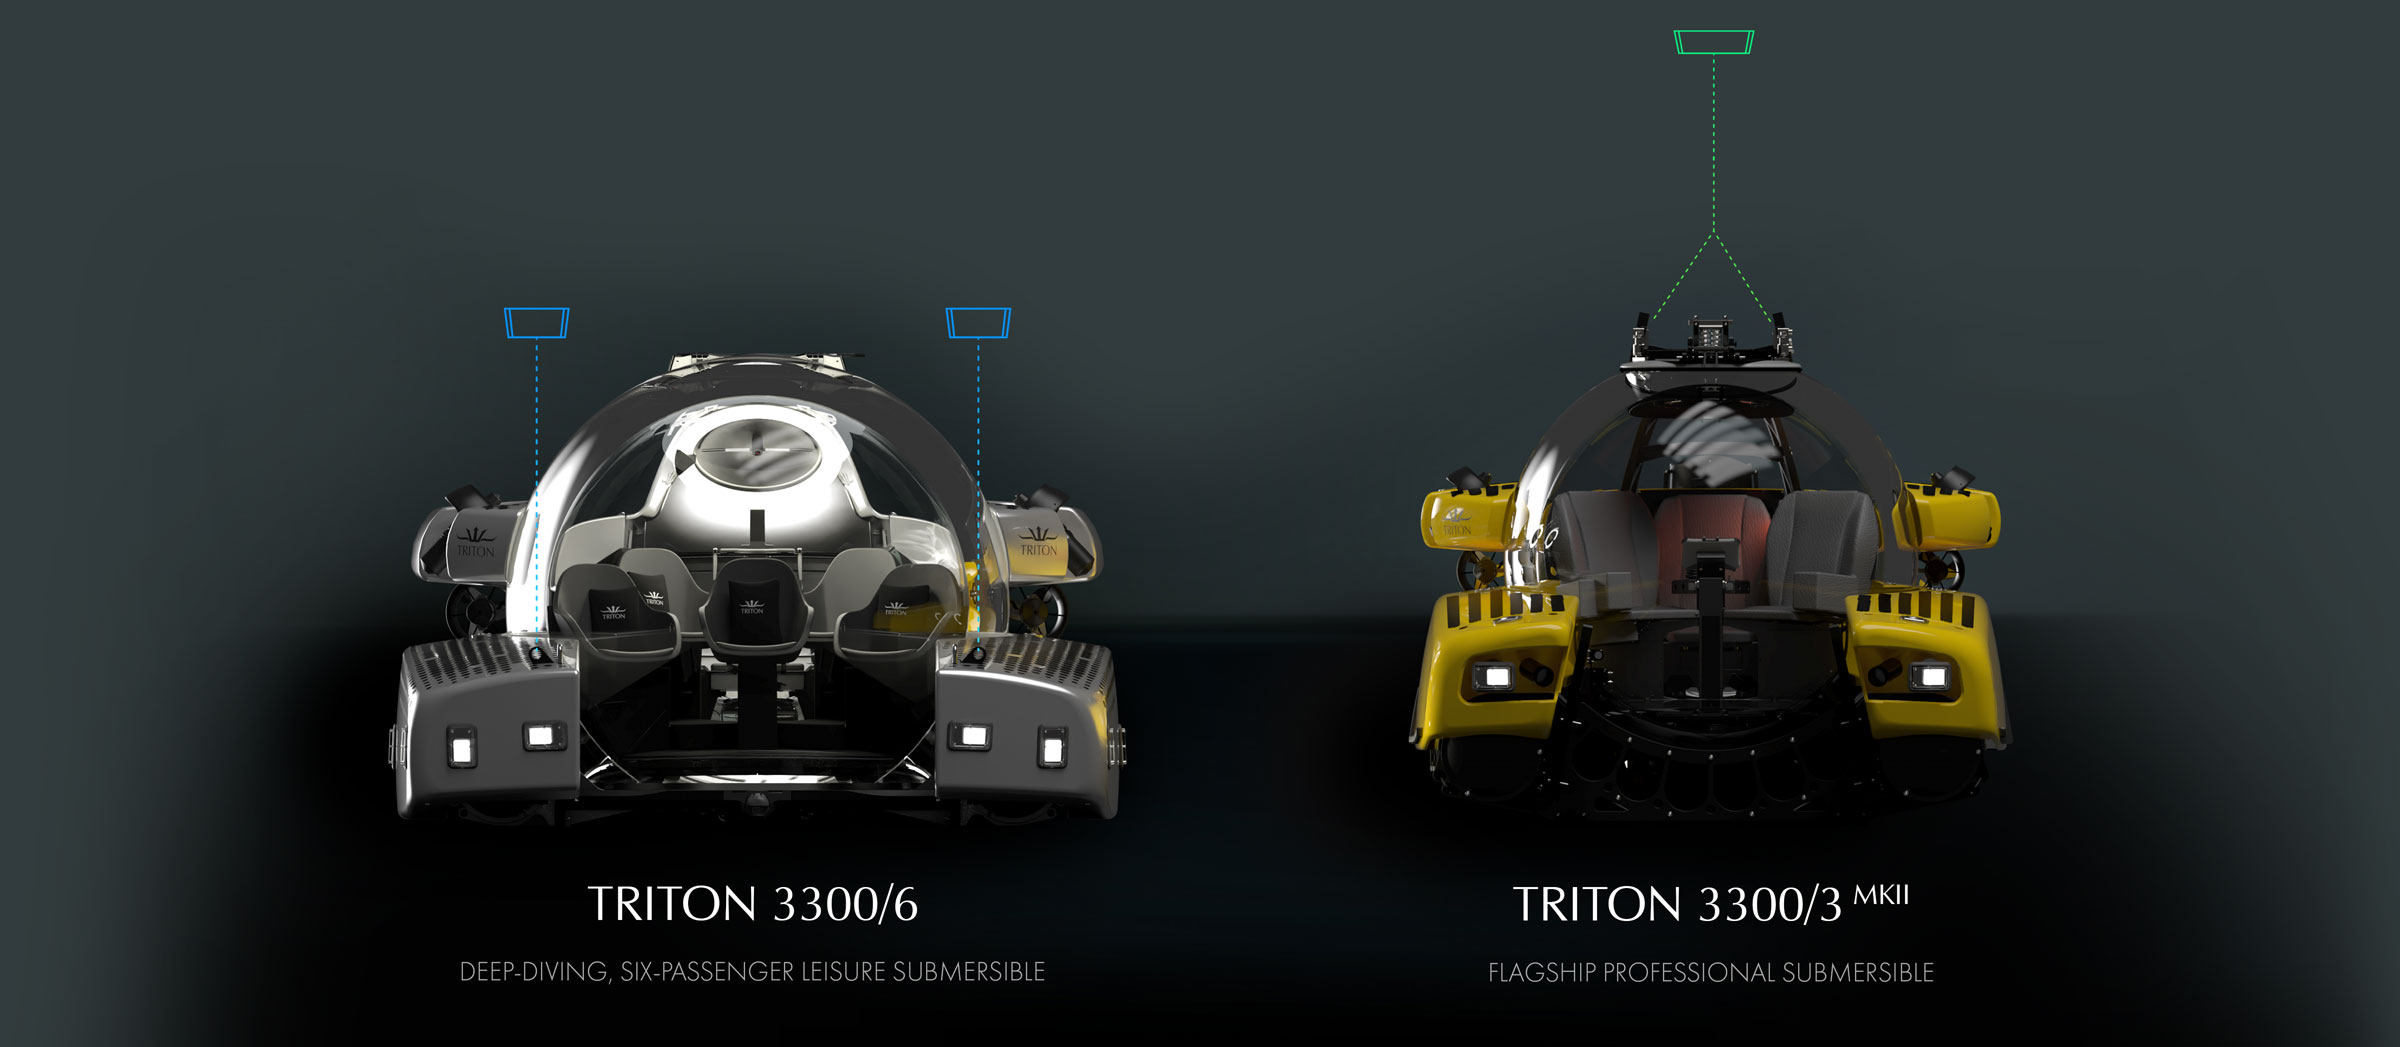 Comparison of lifting arrangements for Triton 3300/6 and 3300/3. T3300/6 requires significantly less overhead.